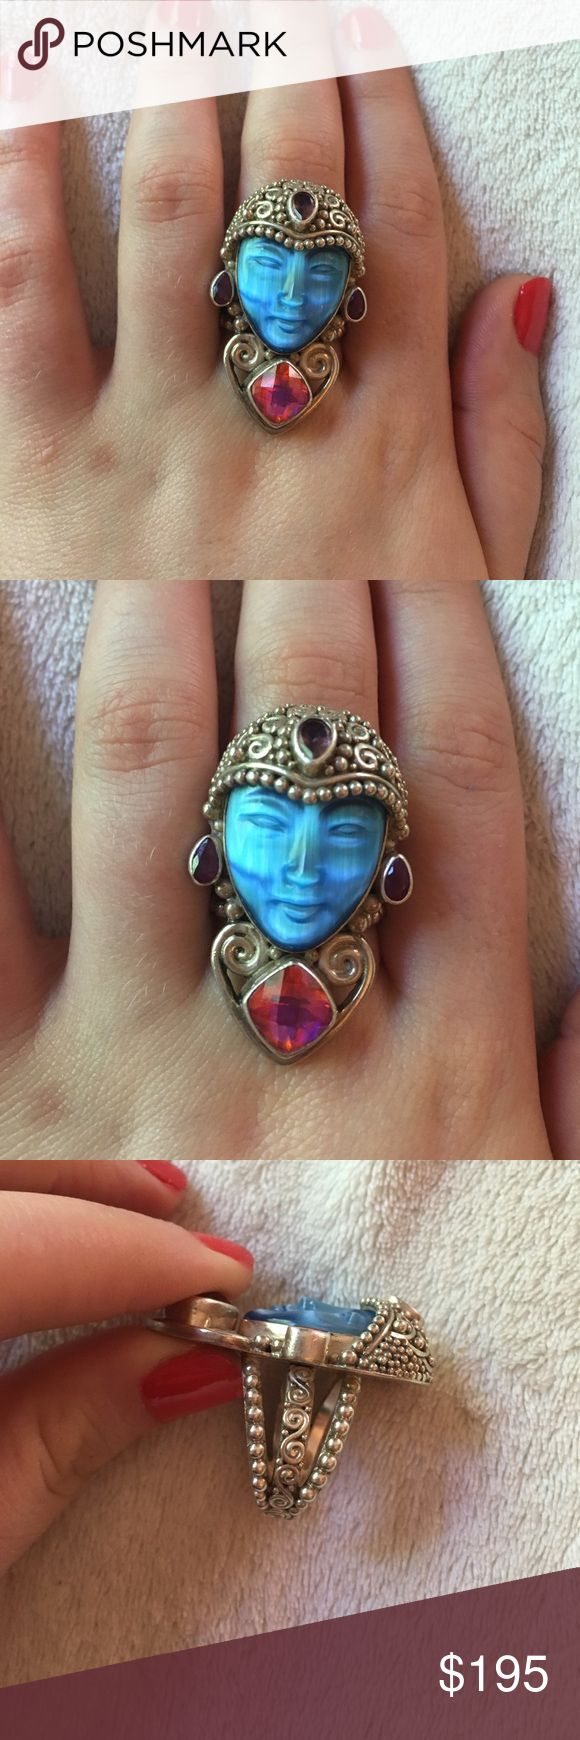 Sterling silver .925 moon stone goddess head ring Very gently worn. This is a sterling silver .925 stamped moonstone ring. Artist signed Sajen . Accented with purple amethyst and mystic topaz. Very rare. The face of the goddess is hand carved ... PRICE FIRM. Size 8. Adjustable. Jewelry Rings